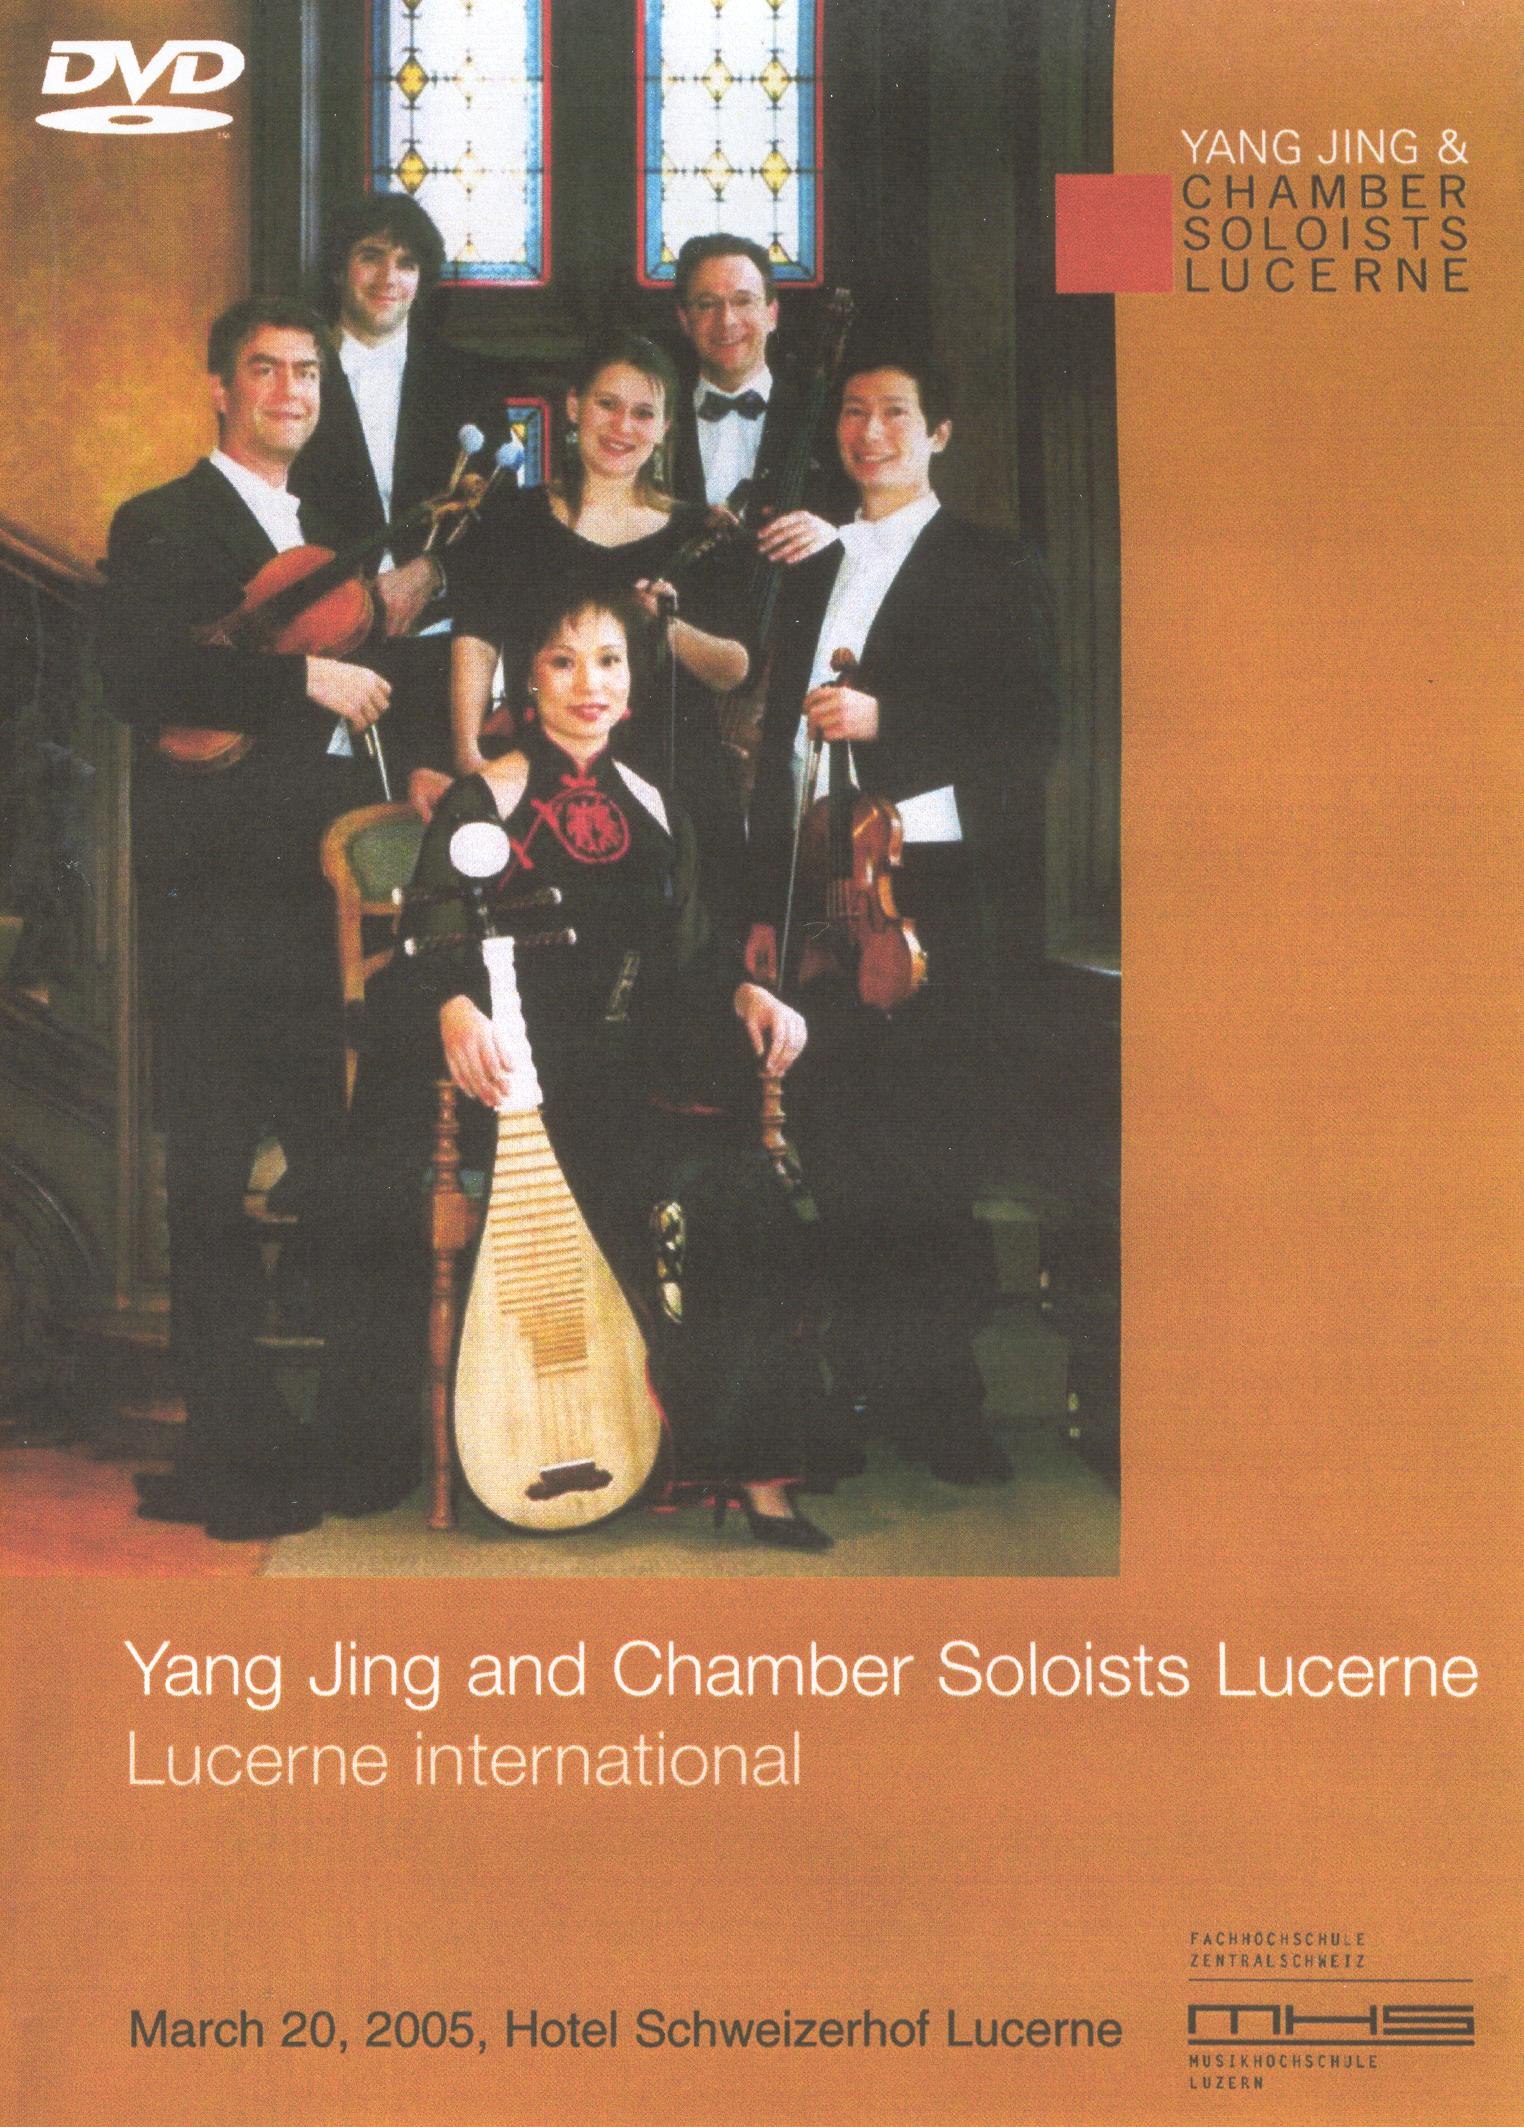 Yang Jing and Chamber Soloists Lucerne